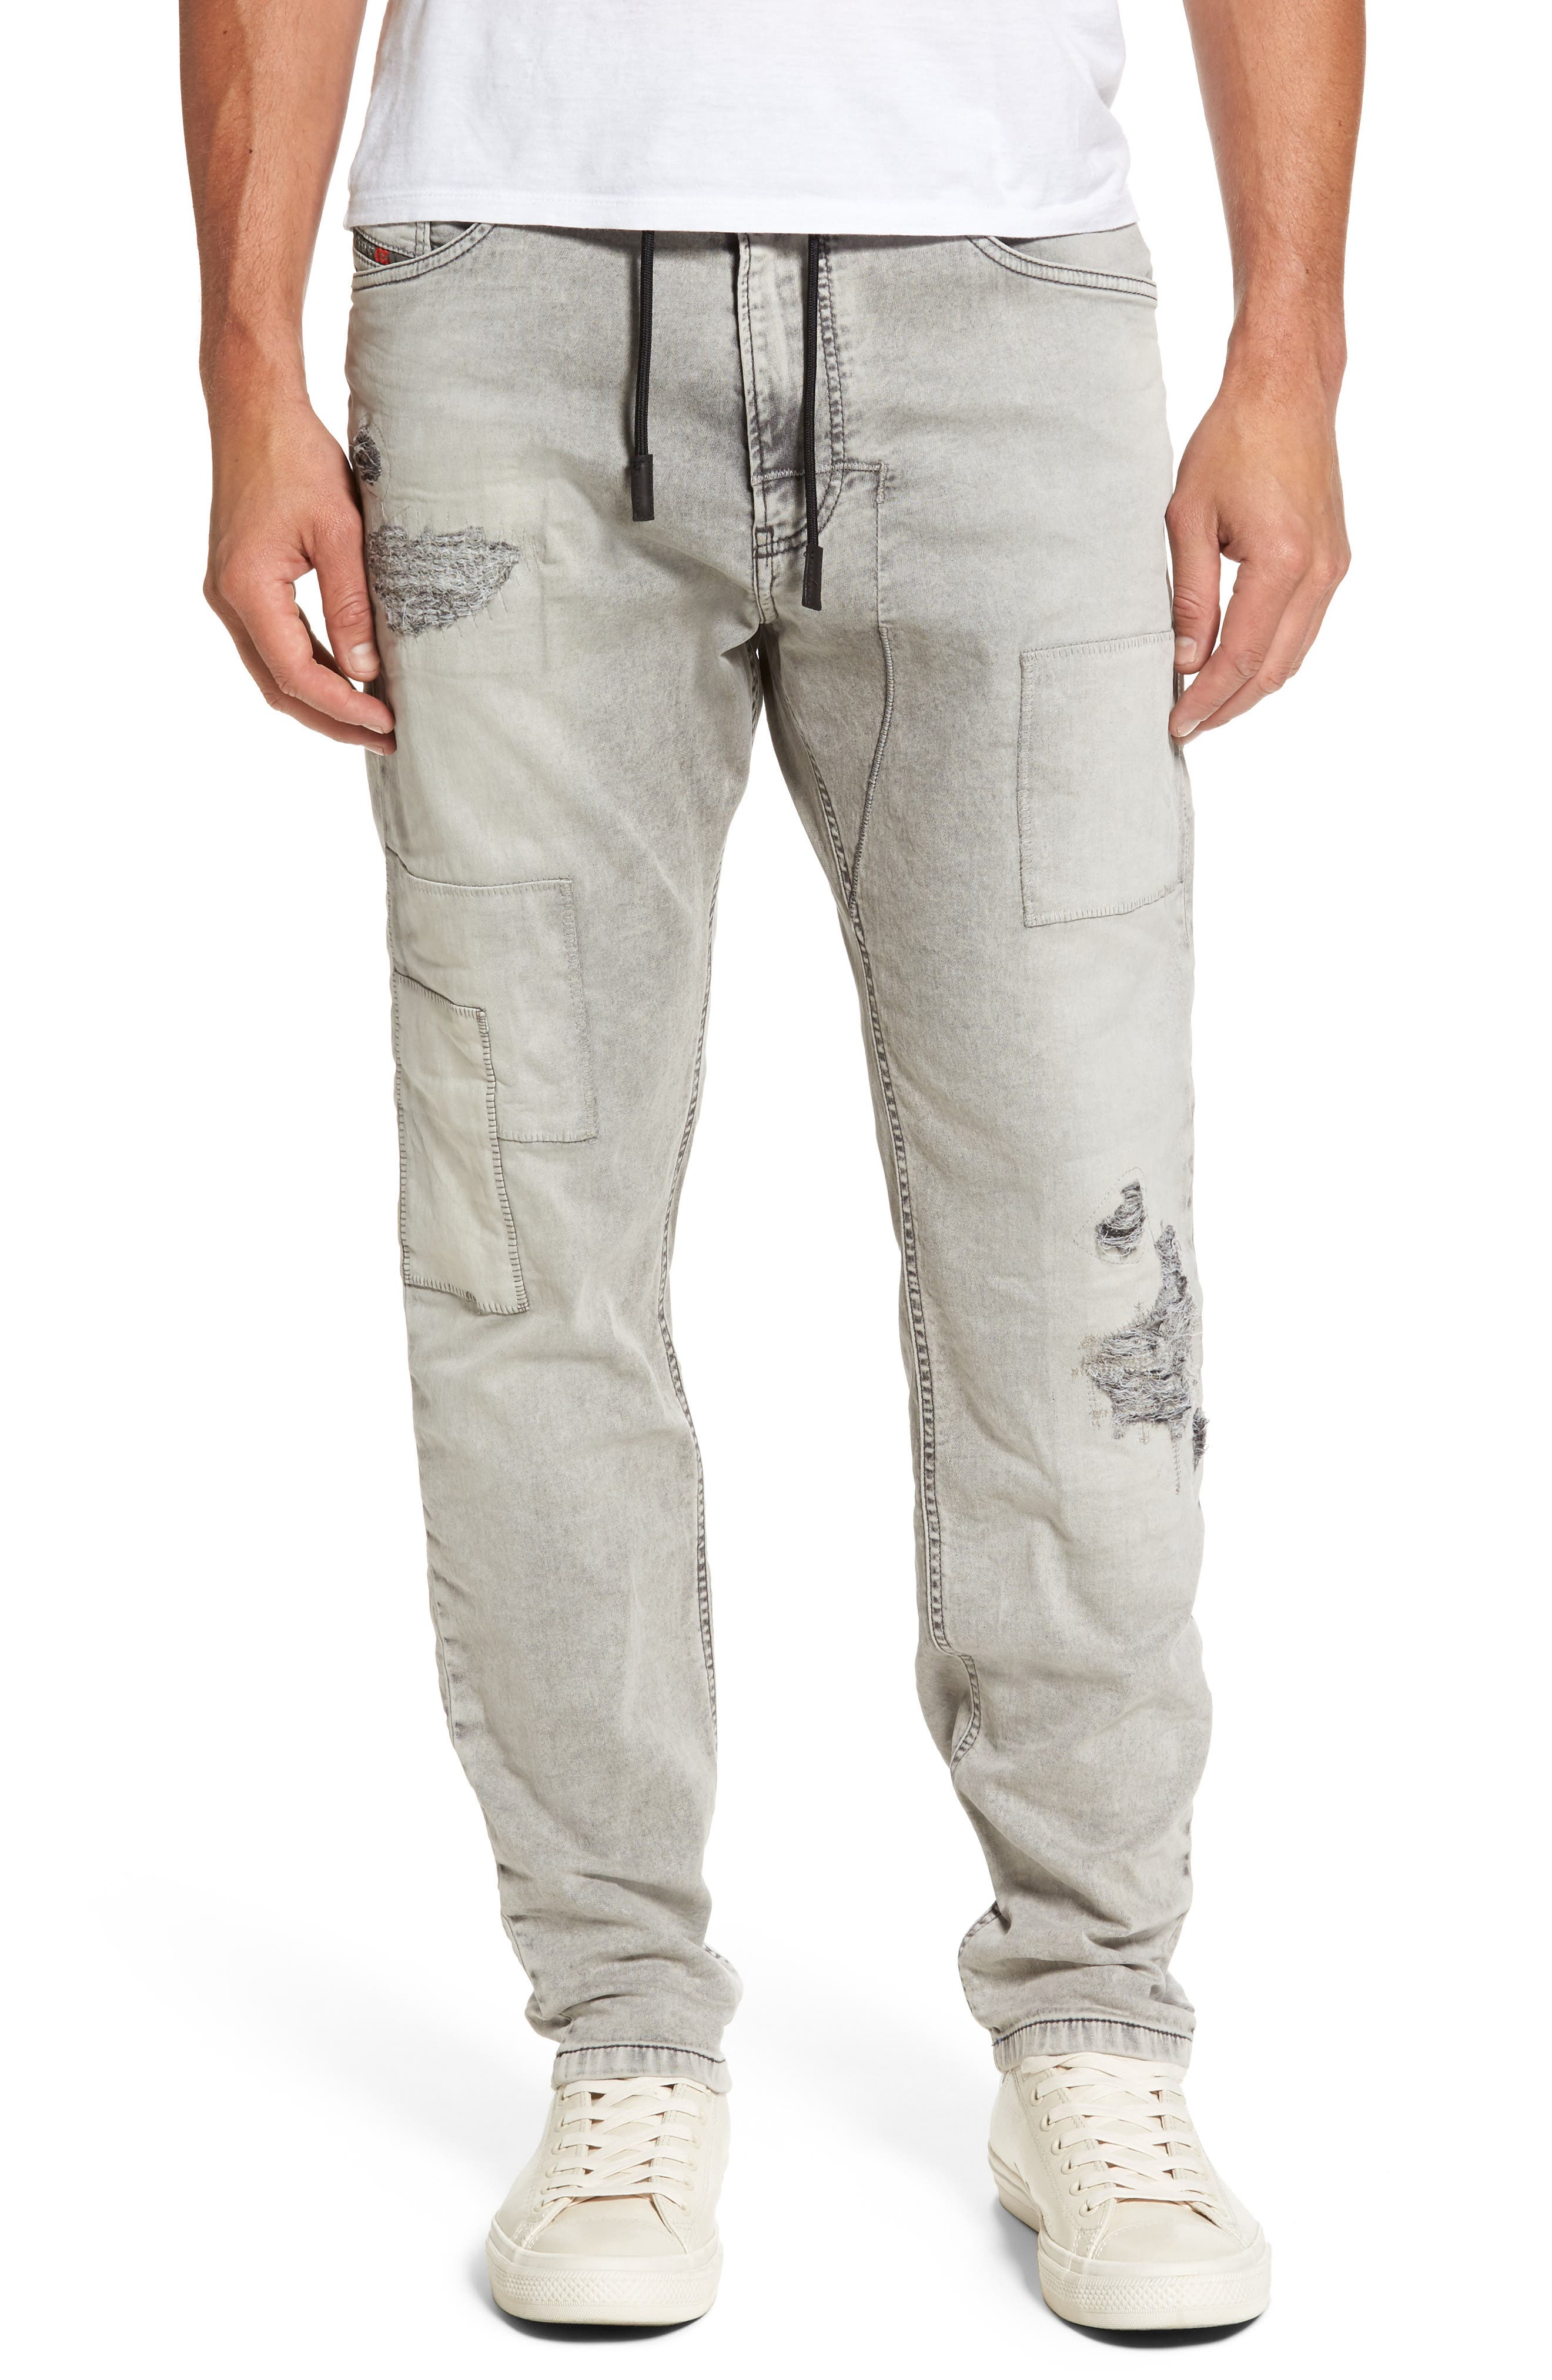 Narrot Slouchy Skinny Fit Jeans,                         Main,                         color, 008